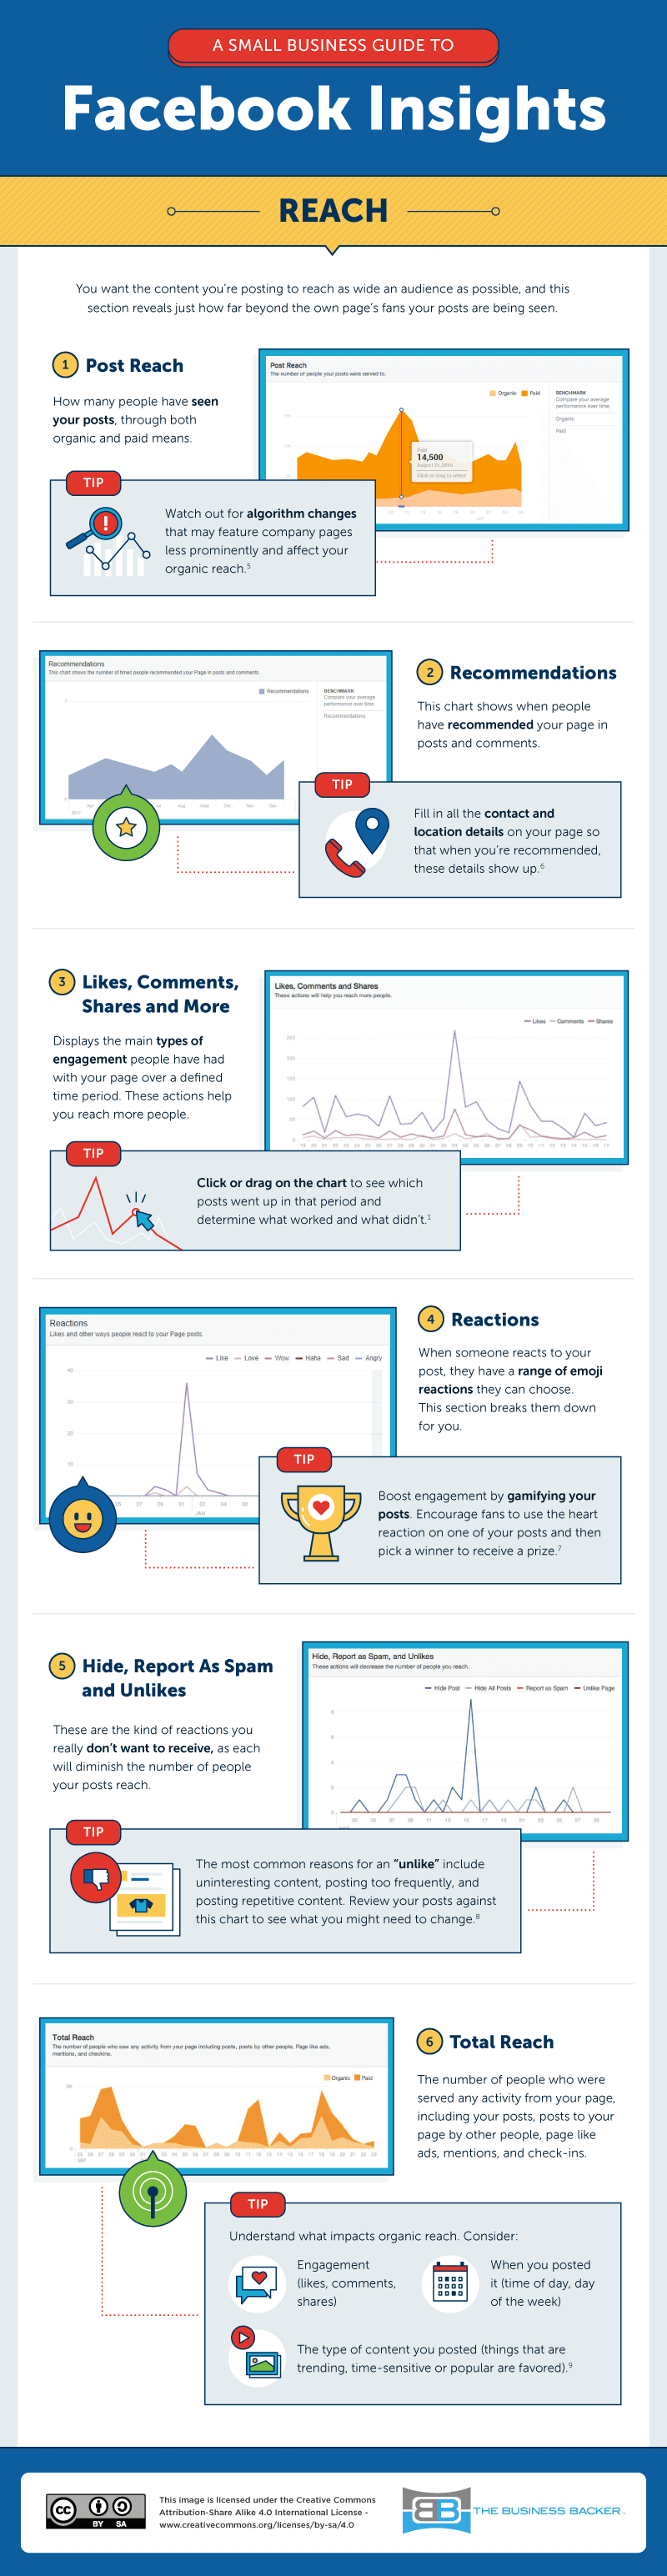 Wondering how to use Facebook Insights for your small business? Here's how to know what's really working on Facebook. Part 3 of the infographic: Reach.